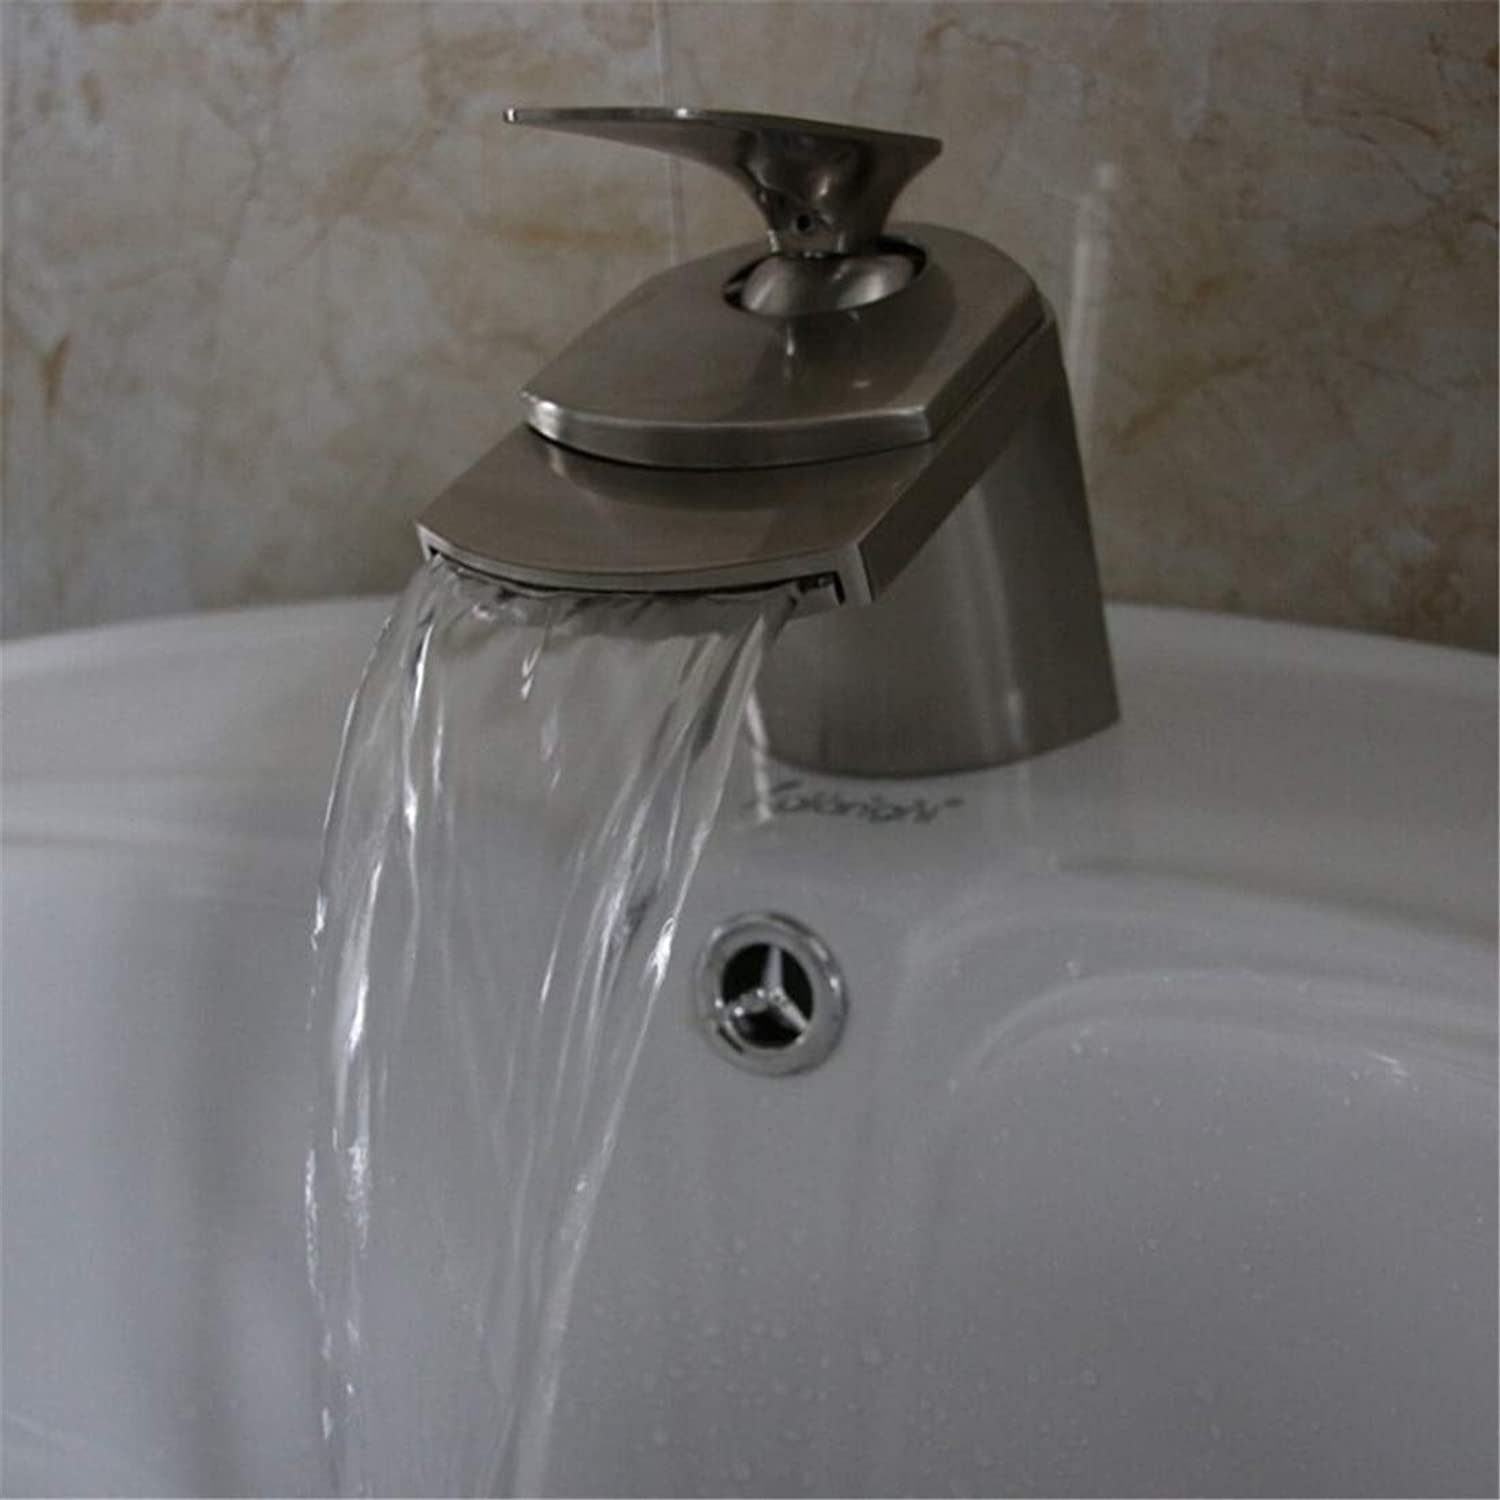 Luxury Modern Hot and Cold Faucet Vintage Platingfaucet Deck Mount Waterfall Hot and Cold Water Bathroom Mixer Taps